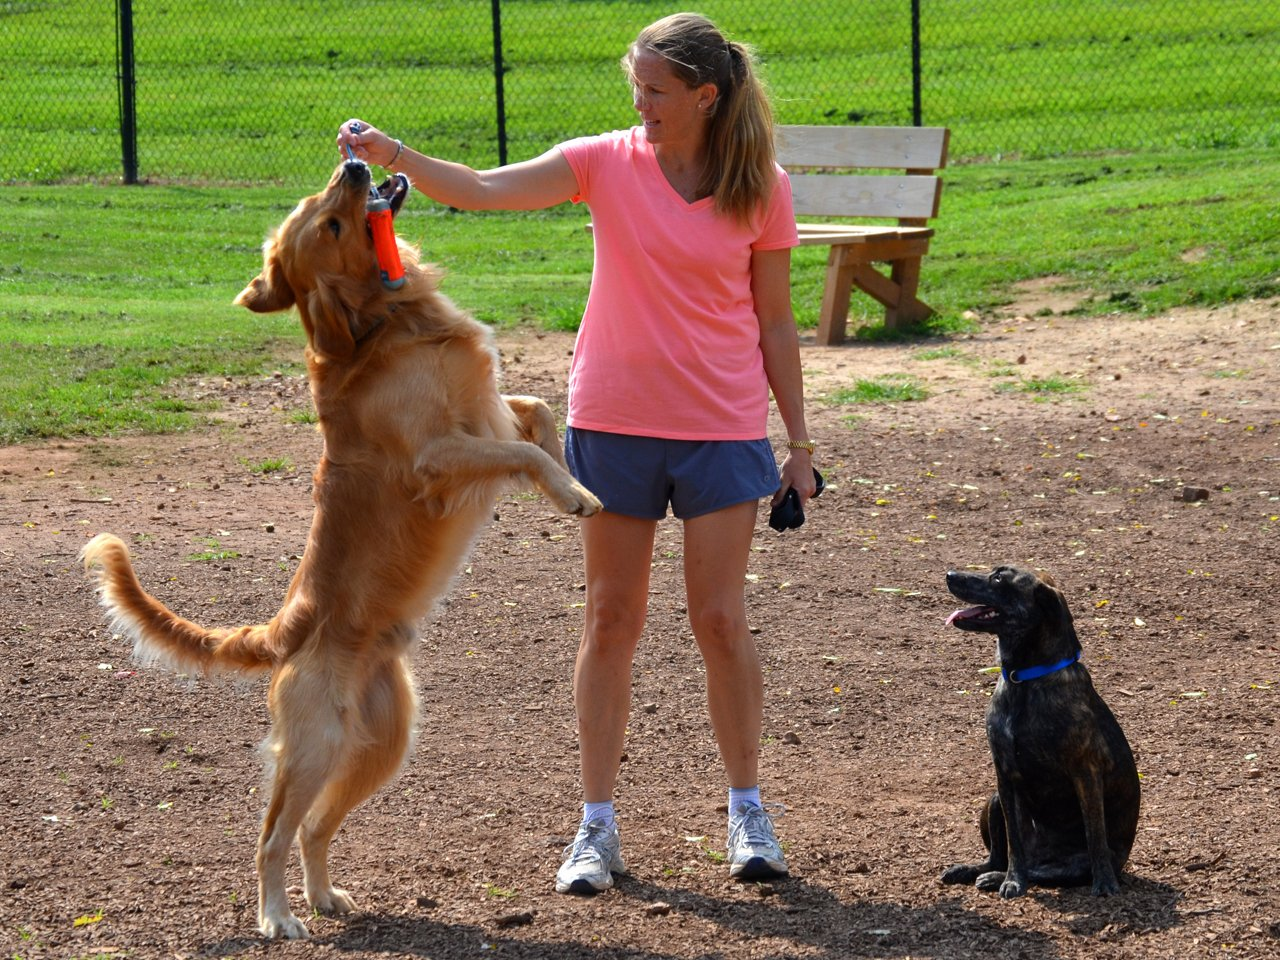 Frank Boone Dog Park City Of Kennesaw